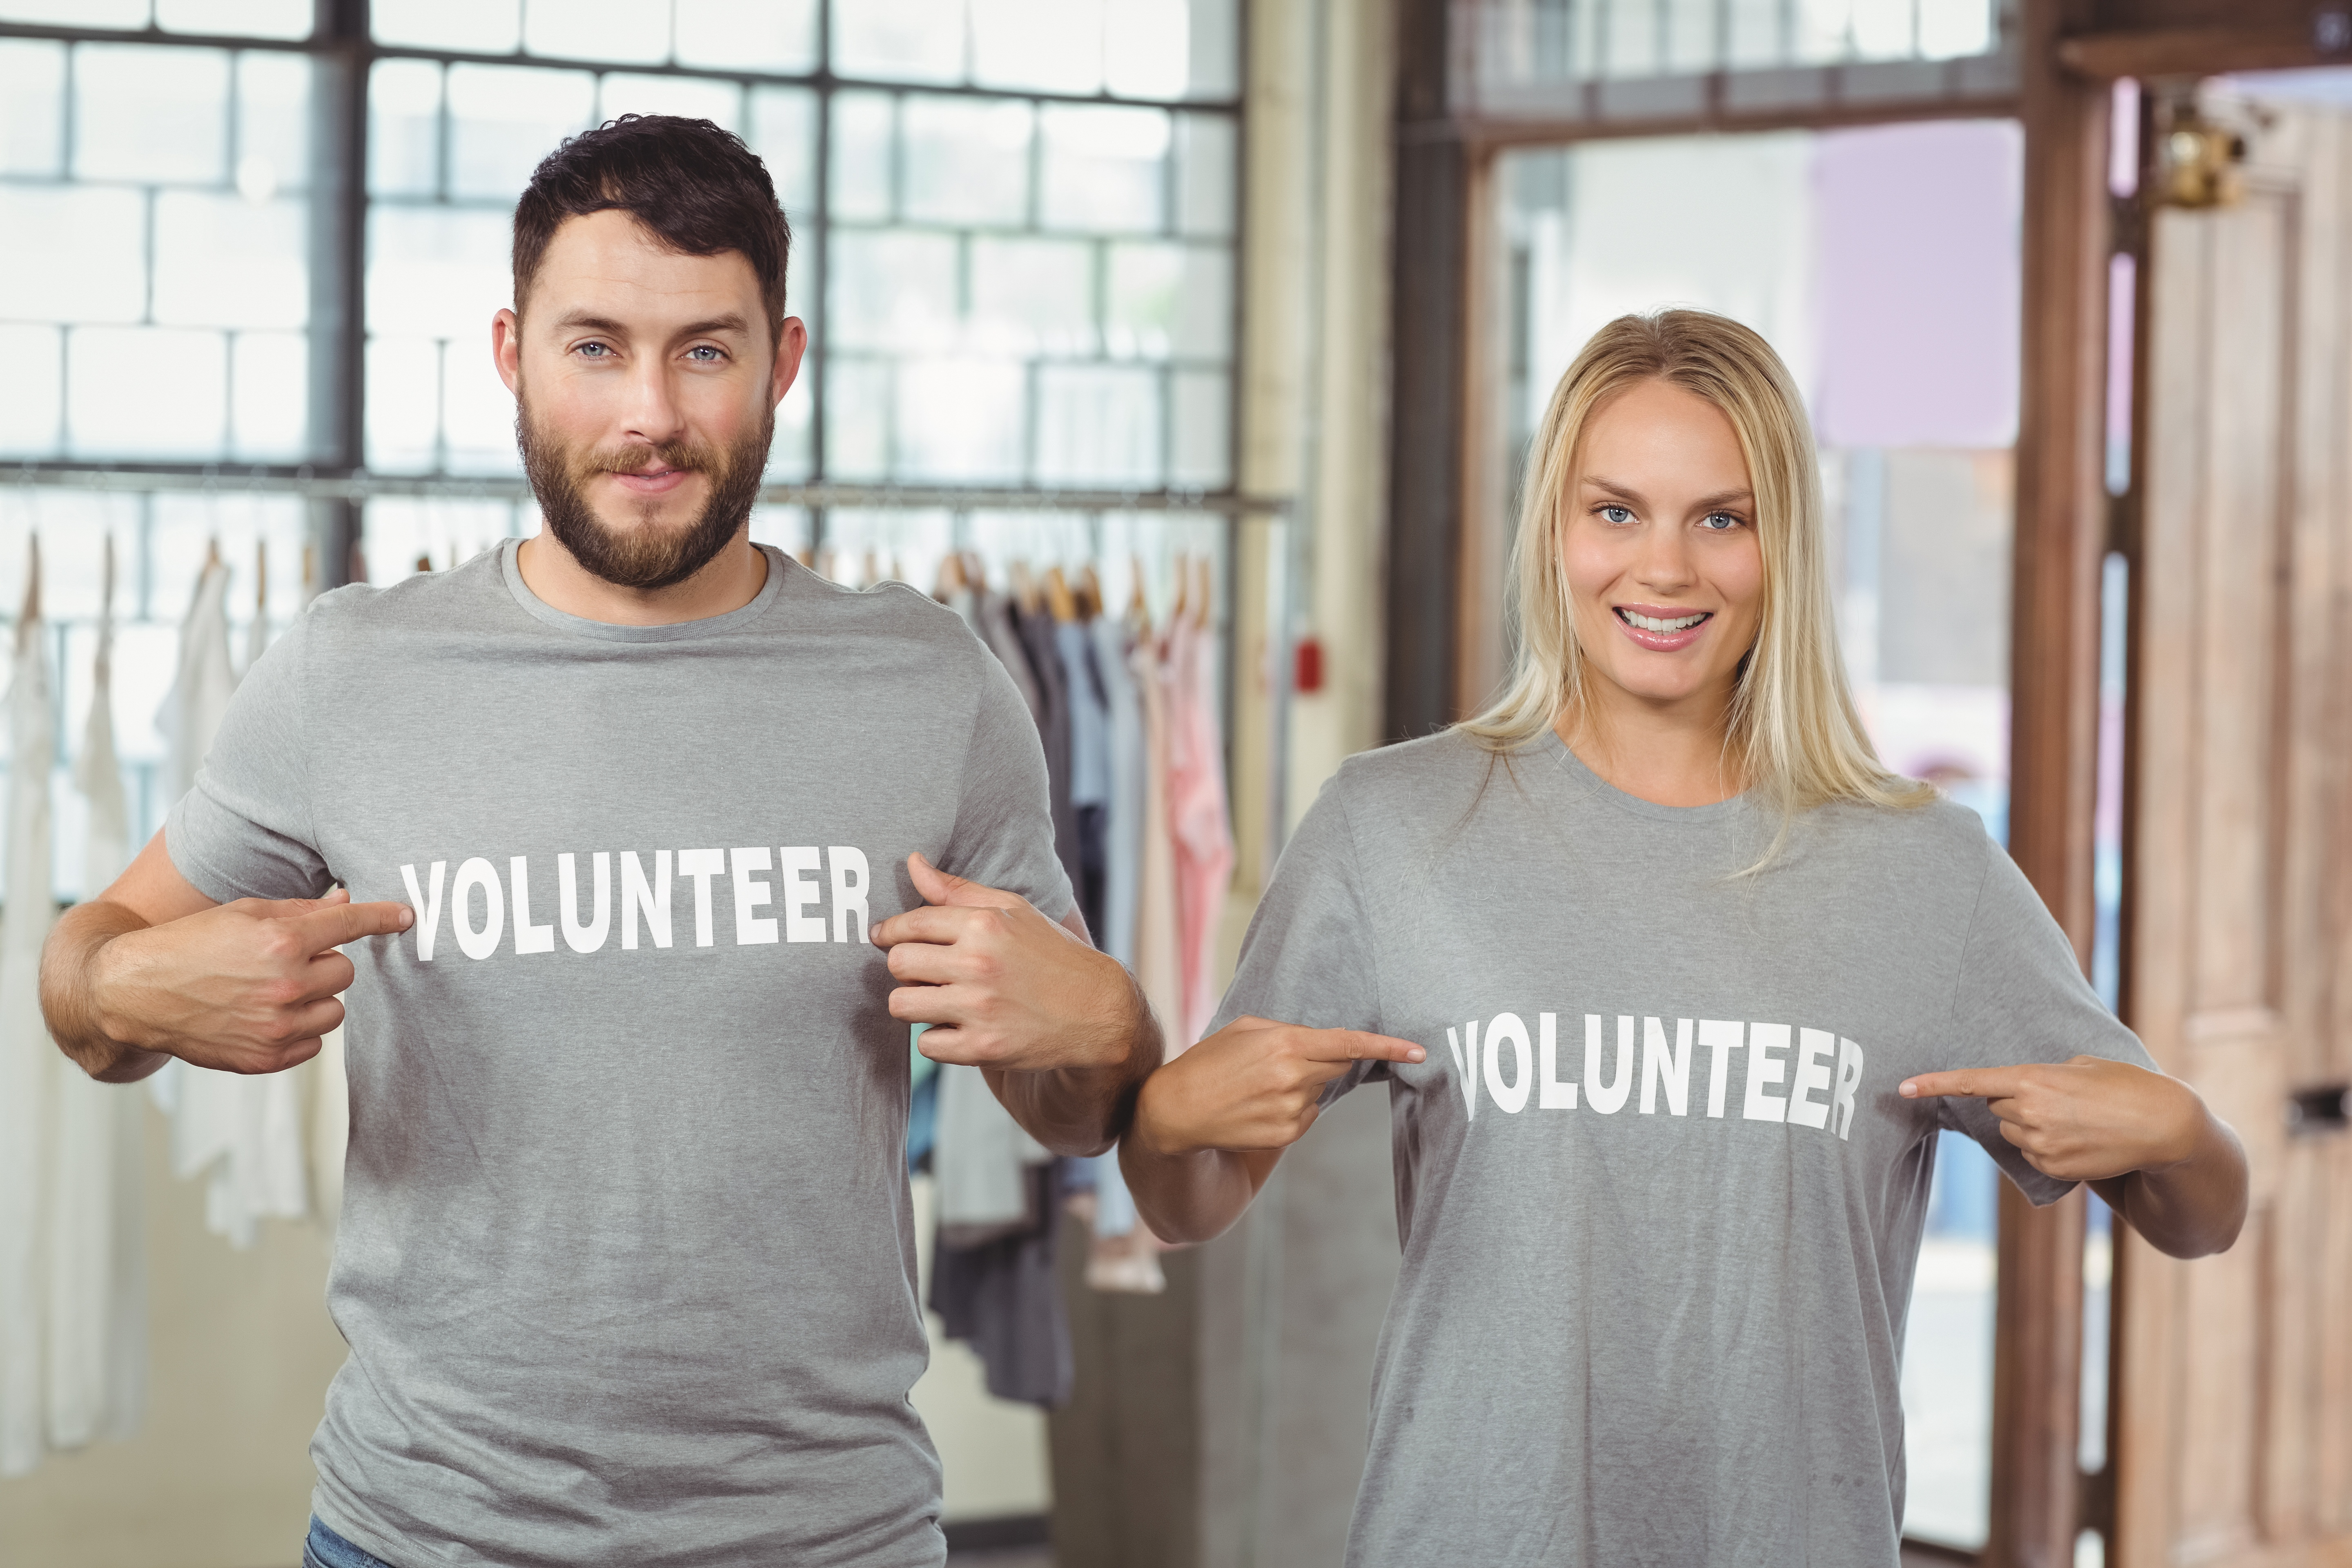 Get Your Workplace Involved